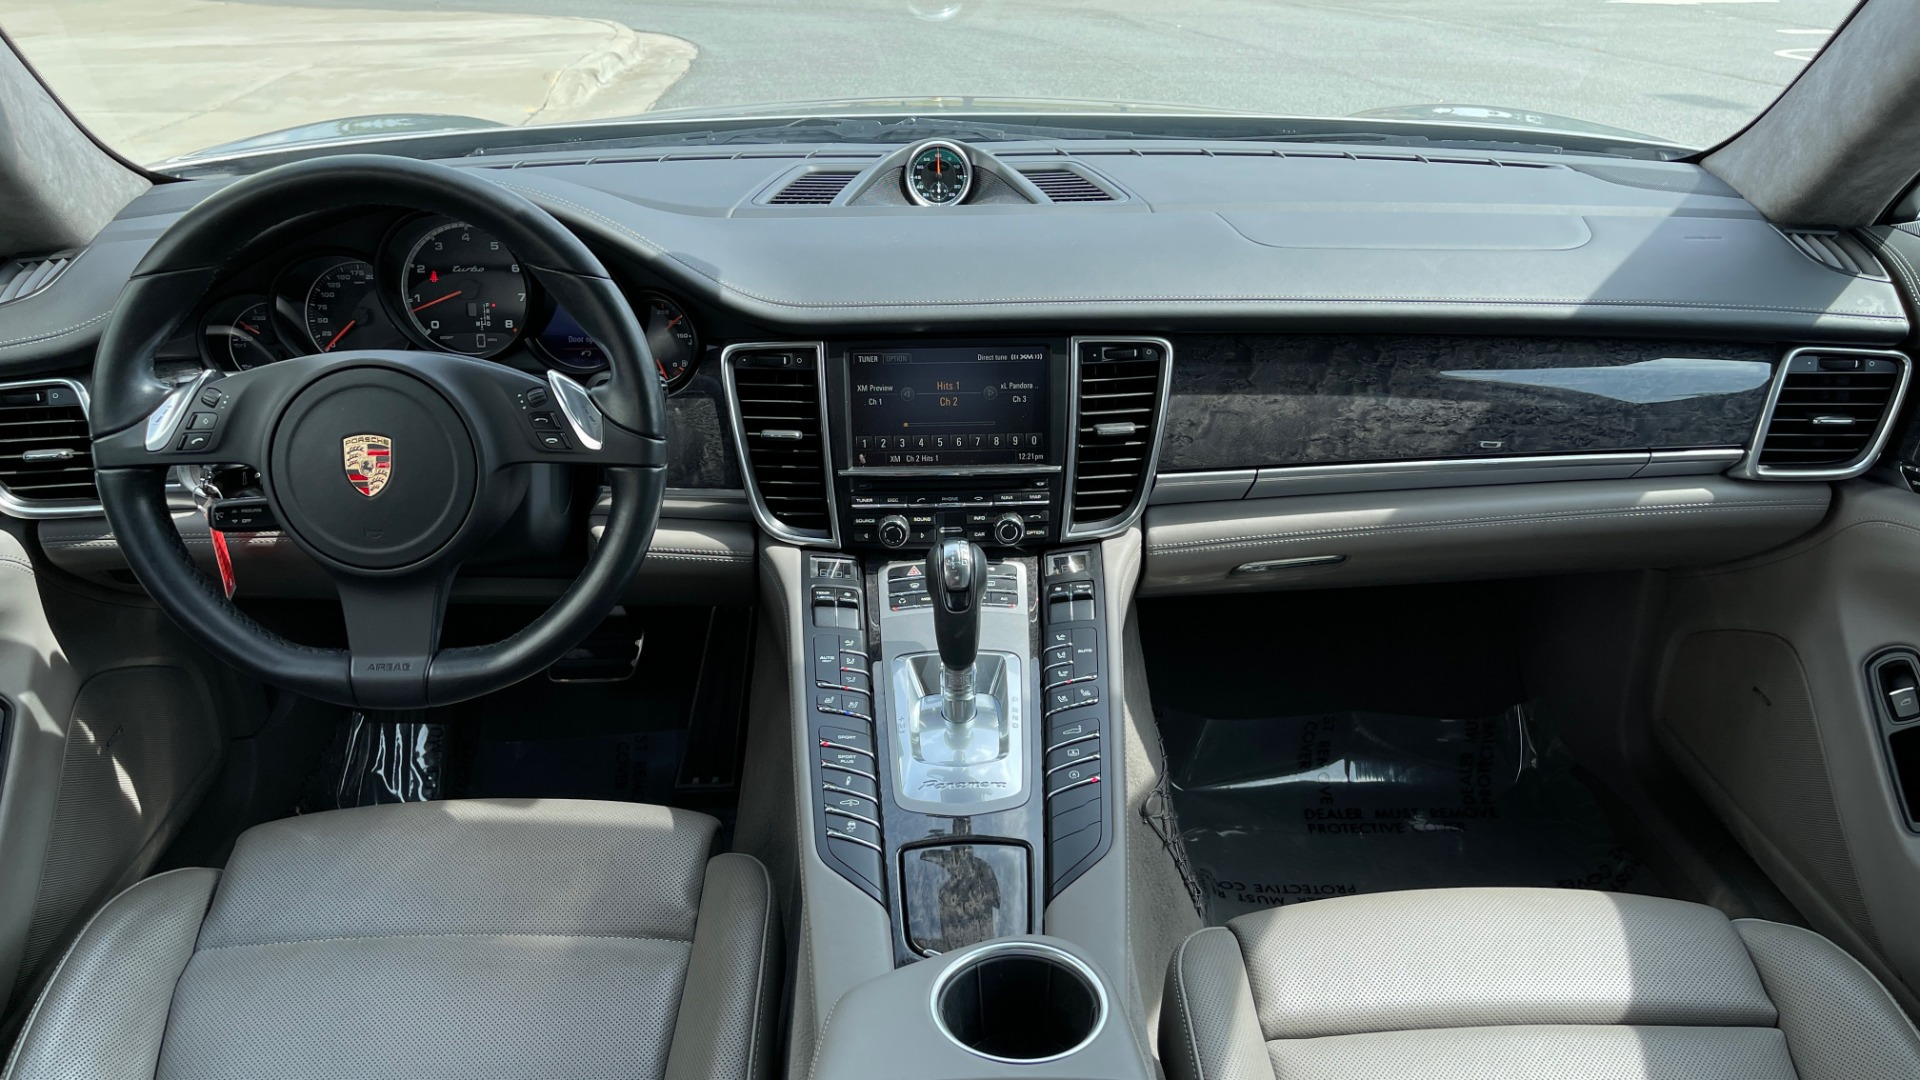 Used 2010 Porsche PANAMERA 4DR HB TURBO / SPORT CHRONO / BOSE / AUTO CLIMATE CONTROL for sale $42,124 at Formula Imports in Charlotte NC 28227 58